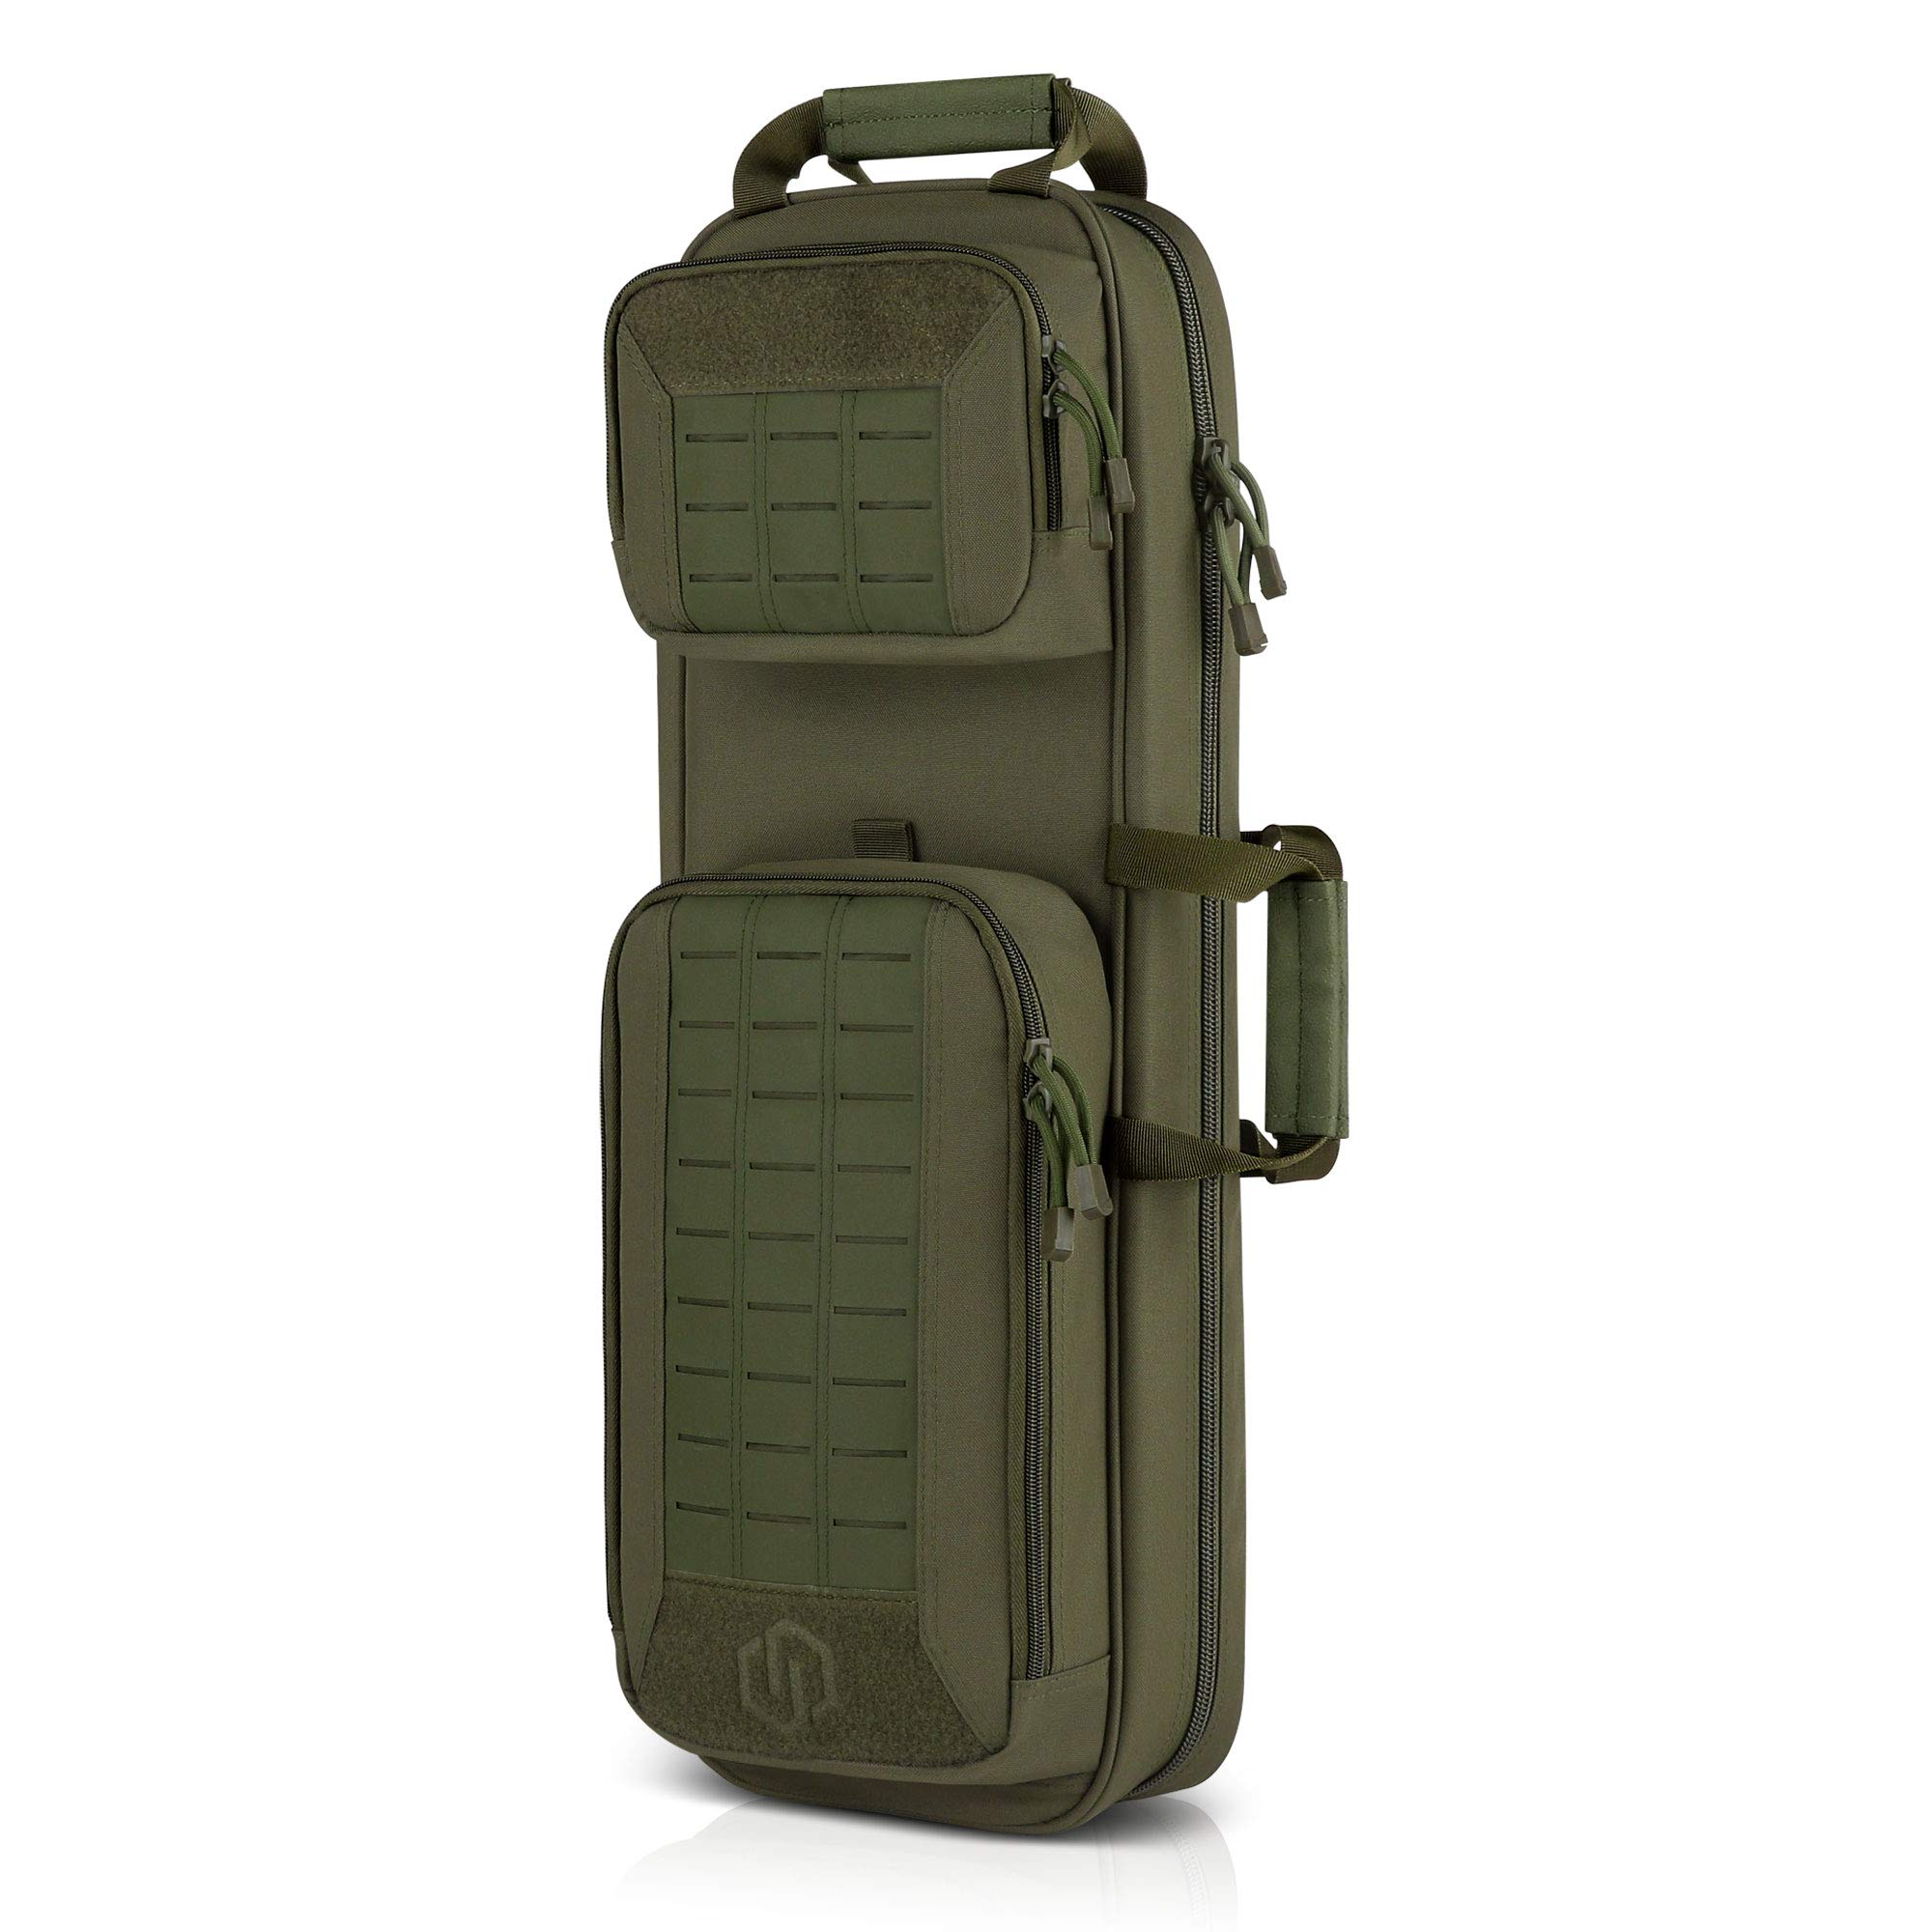 Savior Equipment Urban Takedown Bag Carbine Rifle Backpack Survival Gun Shotgun Firearm Transportation Case Sling Pack - Additional Storage, Deluxe Carrying Handle with Shoulder Straps Included by Savior Equipment